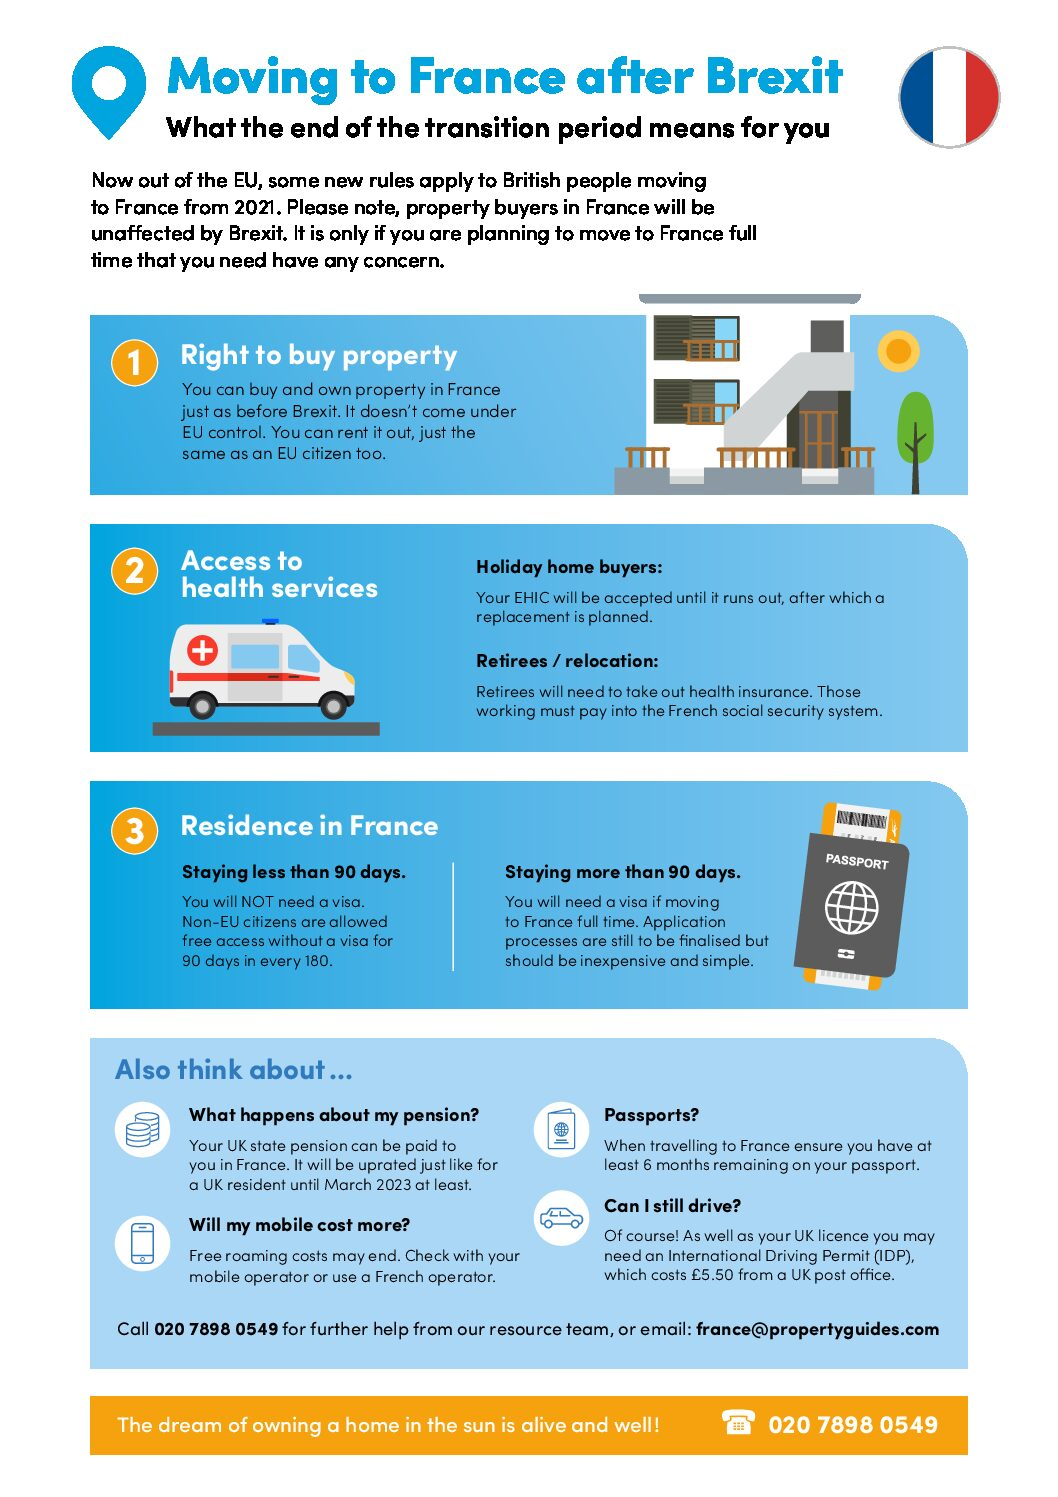 View our full infographic on the key points for France property buyers   Property Guides France